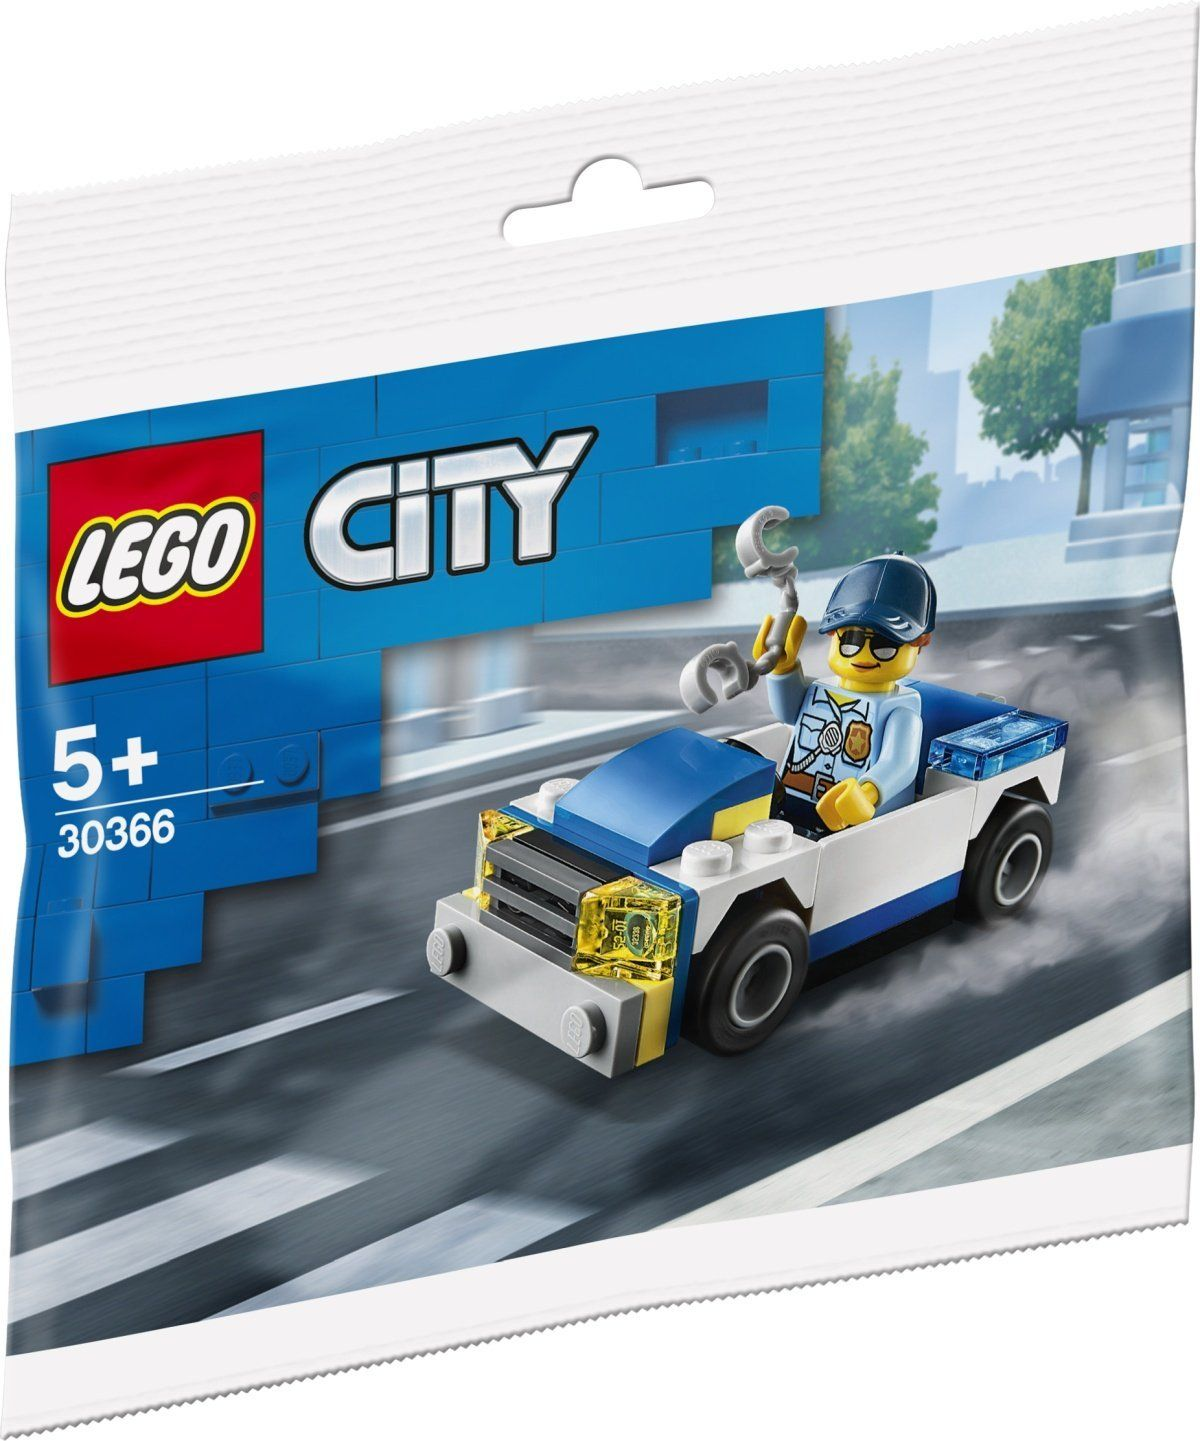 Lego 303661 Police Car in 2020 Lego city police, Lego